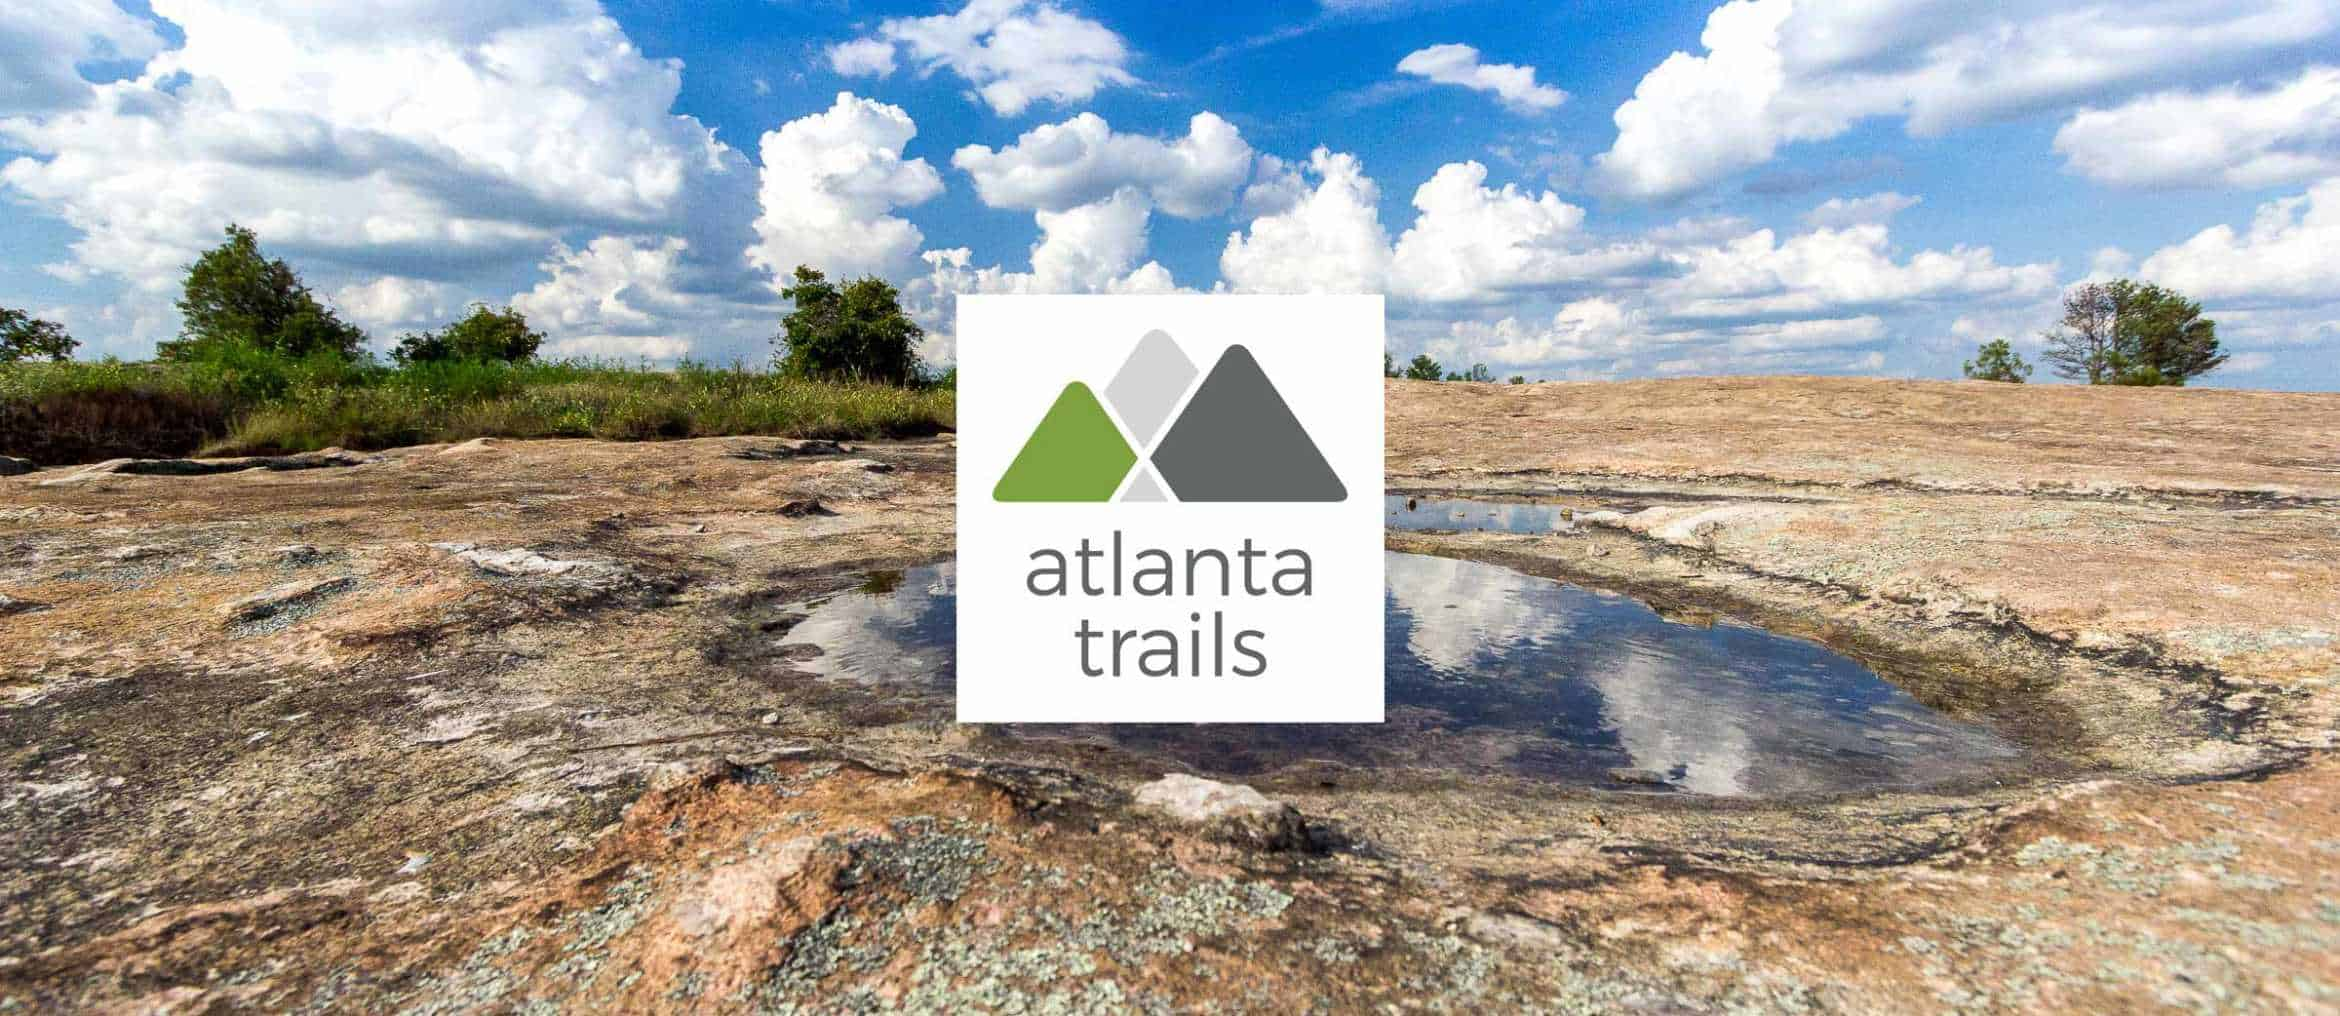 Contact Atlanta Trails